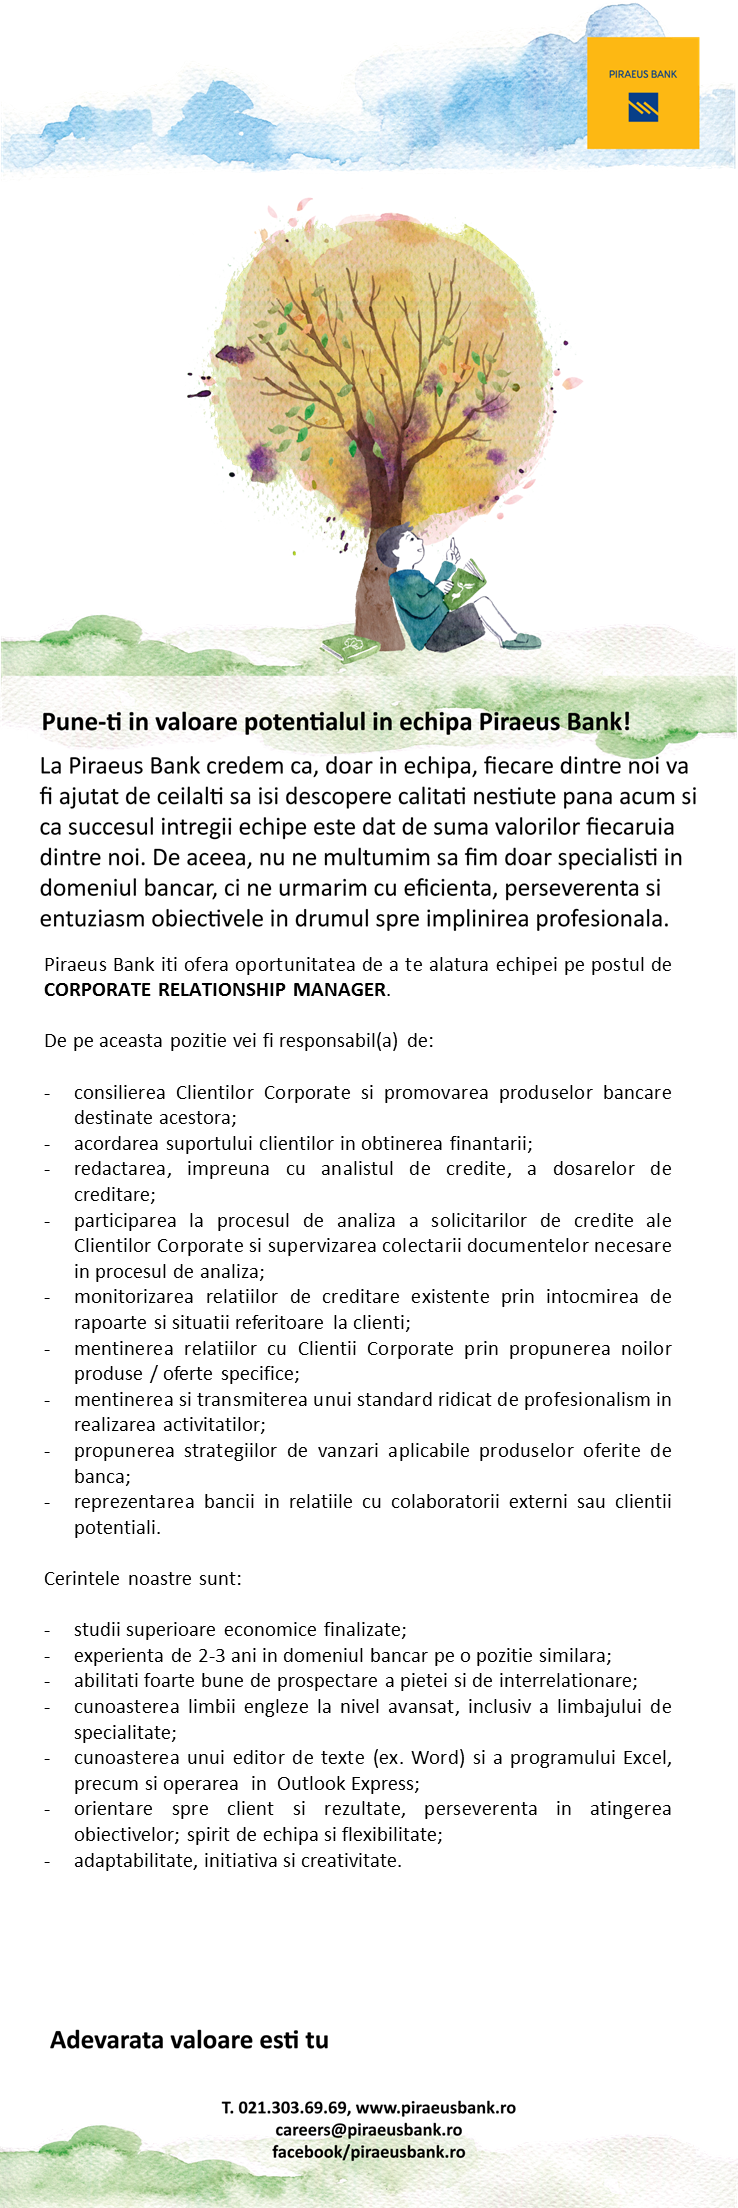 CORPORATE RELATIONSHIP MANAGER